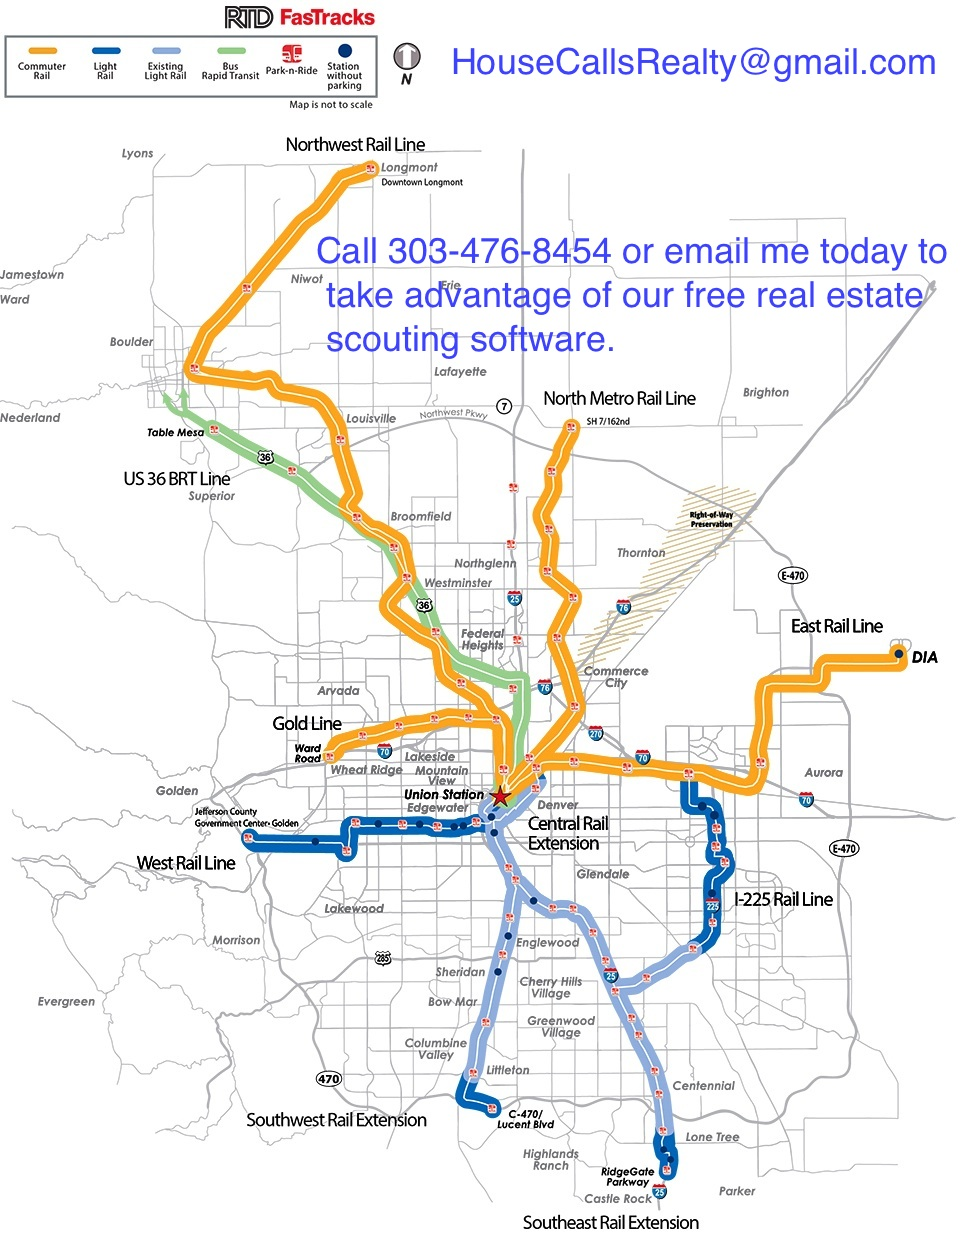 denver rtd lightrail extension plans  colorado listing agent  - denver light rail development map